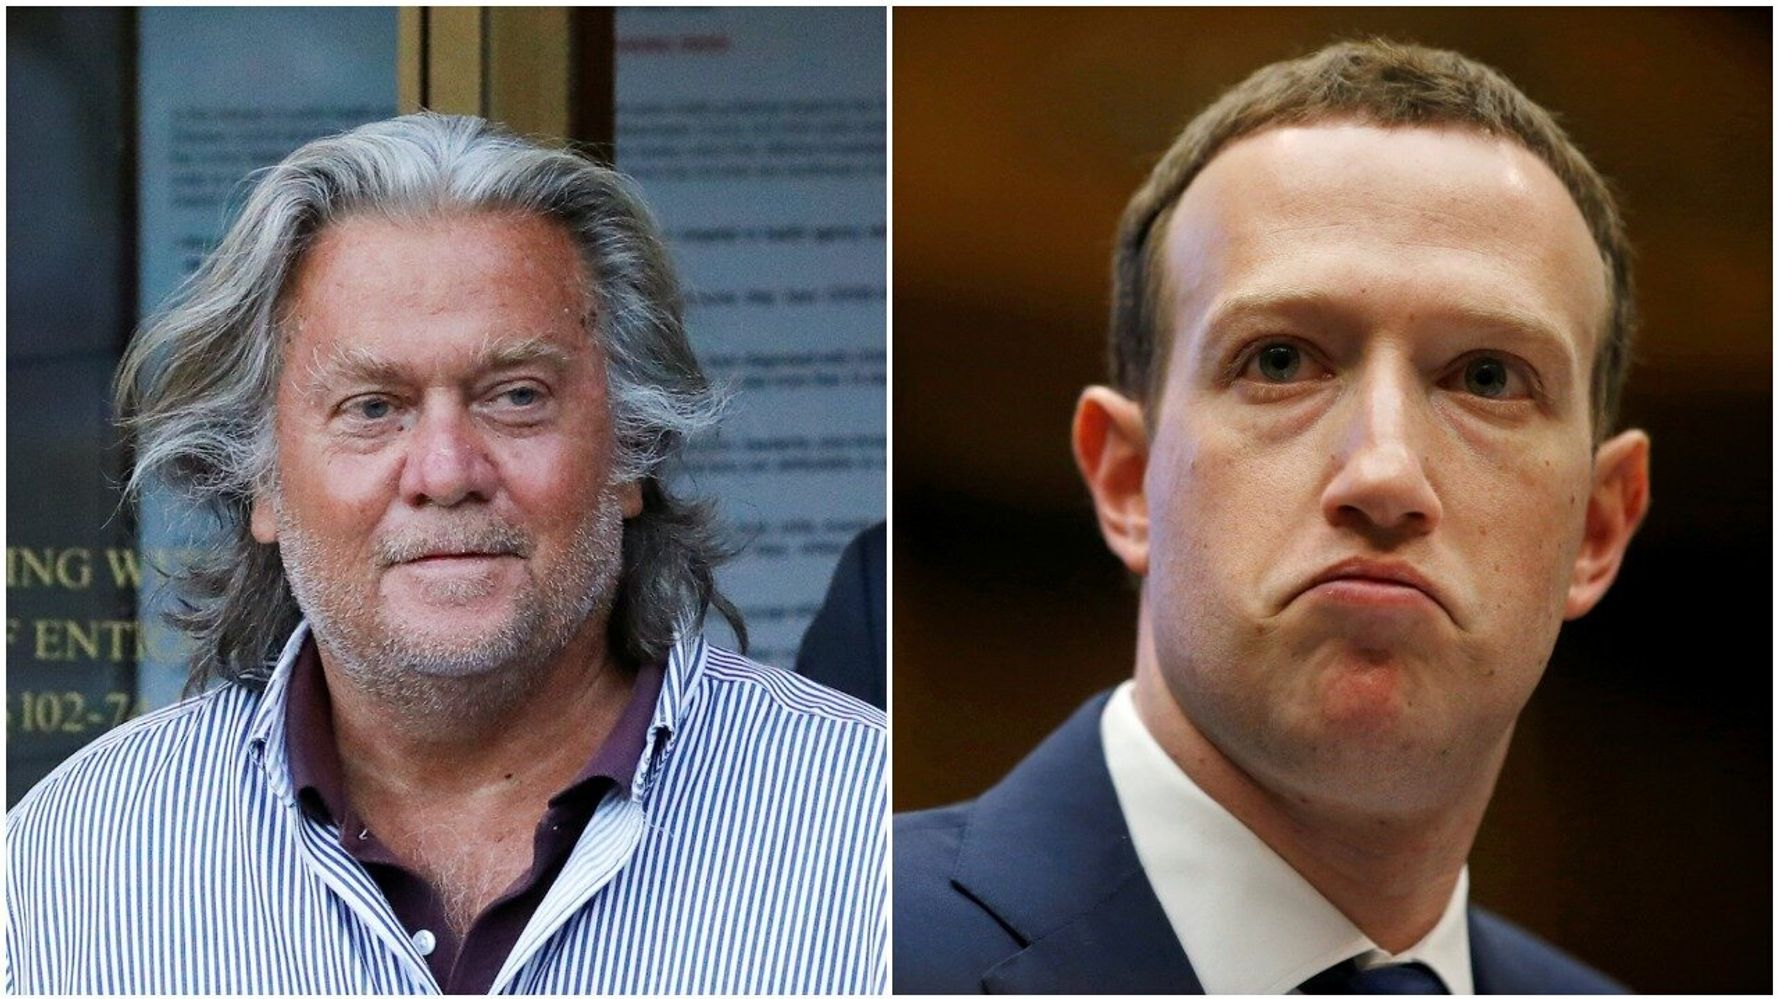 Mark Zuckerberg: Steve Bannon Hasn't Violated Enough Policies For Facebook Ban